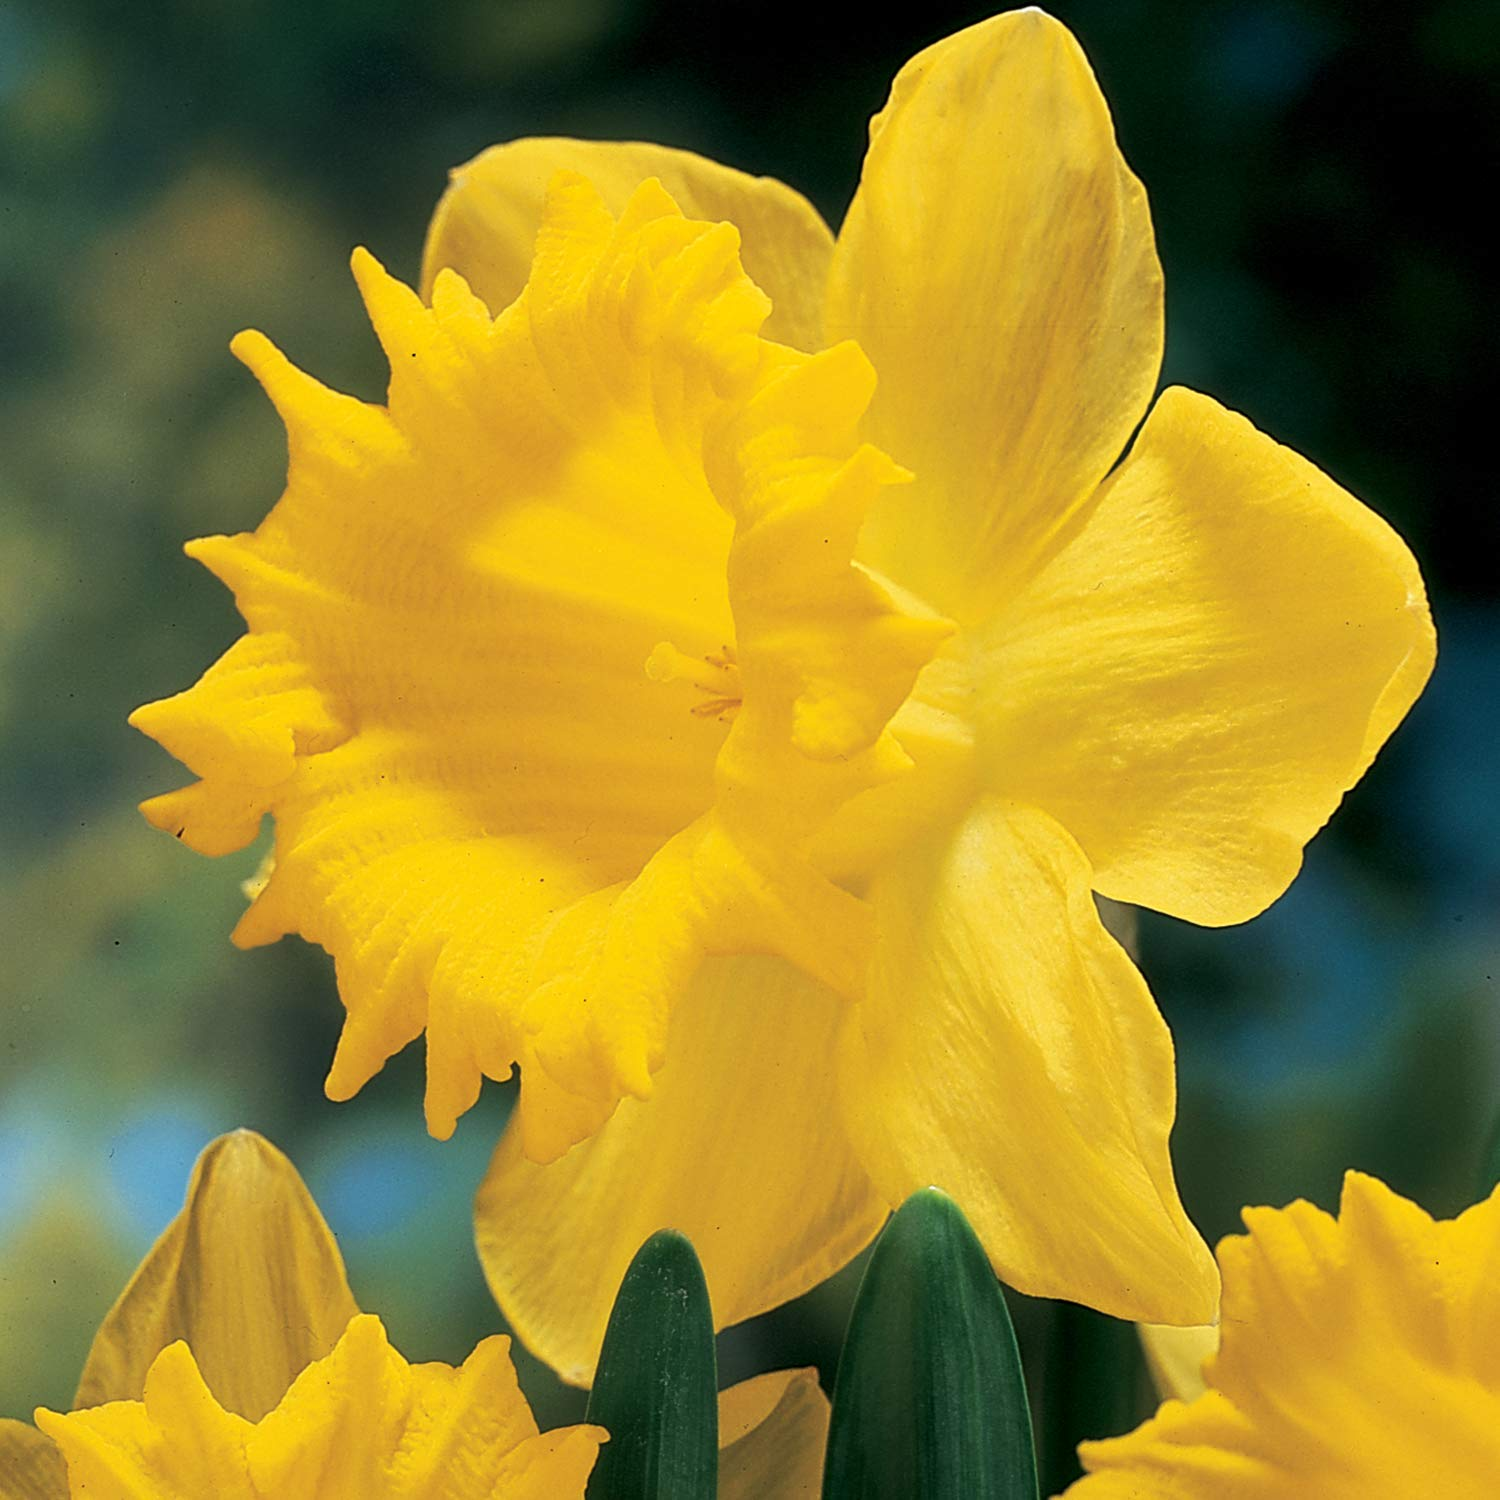 Burpee Dutch Master Daffodil | 10 Large Flowering Fall Bulbs for Planting, Yellow by Burpee